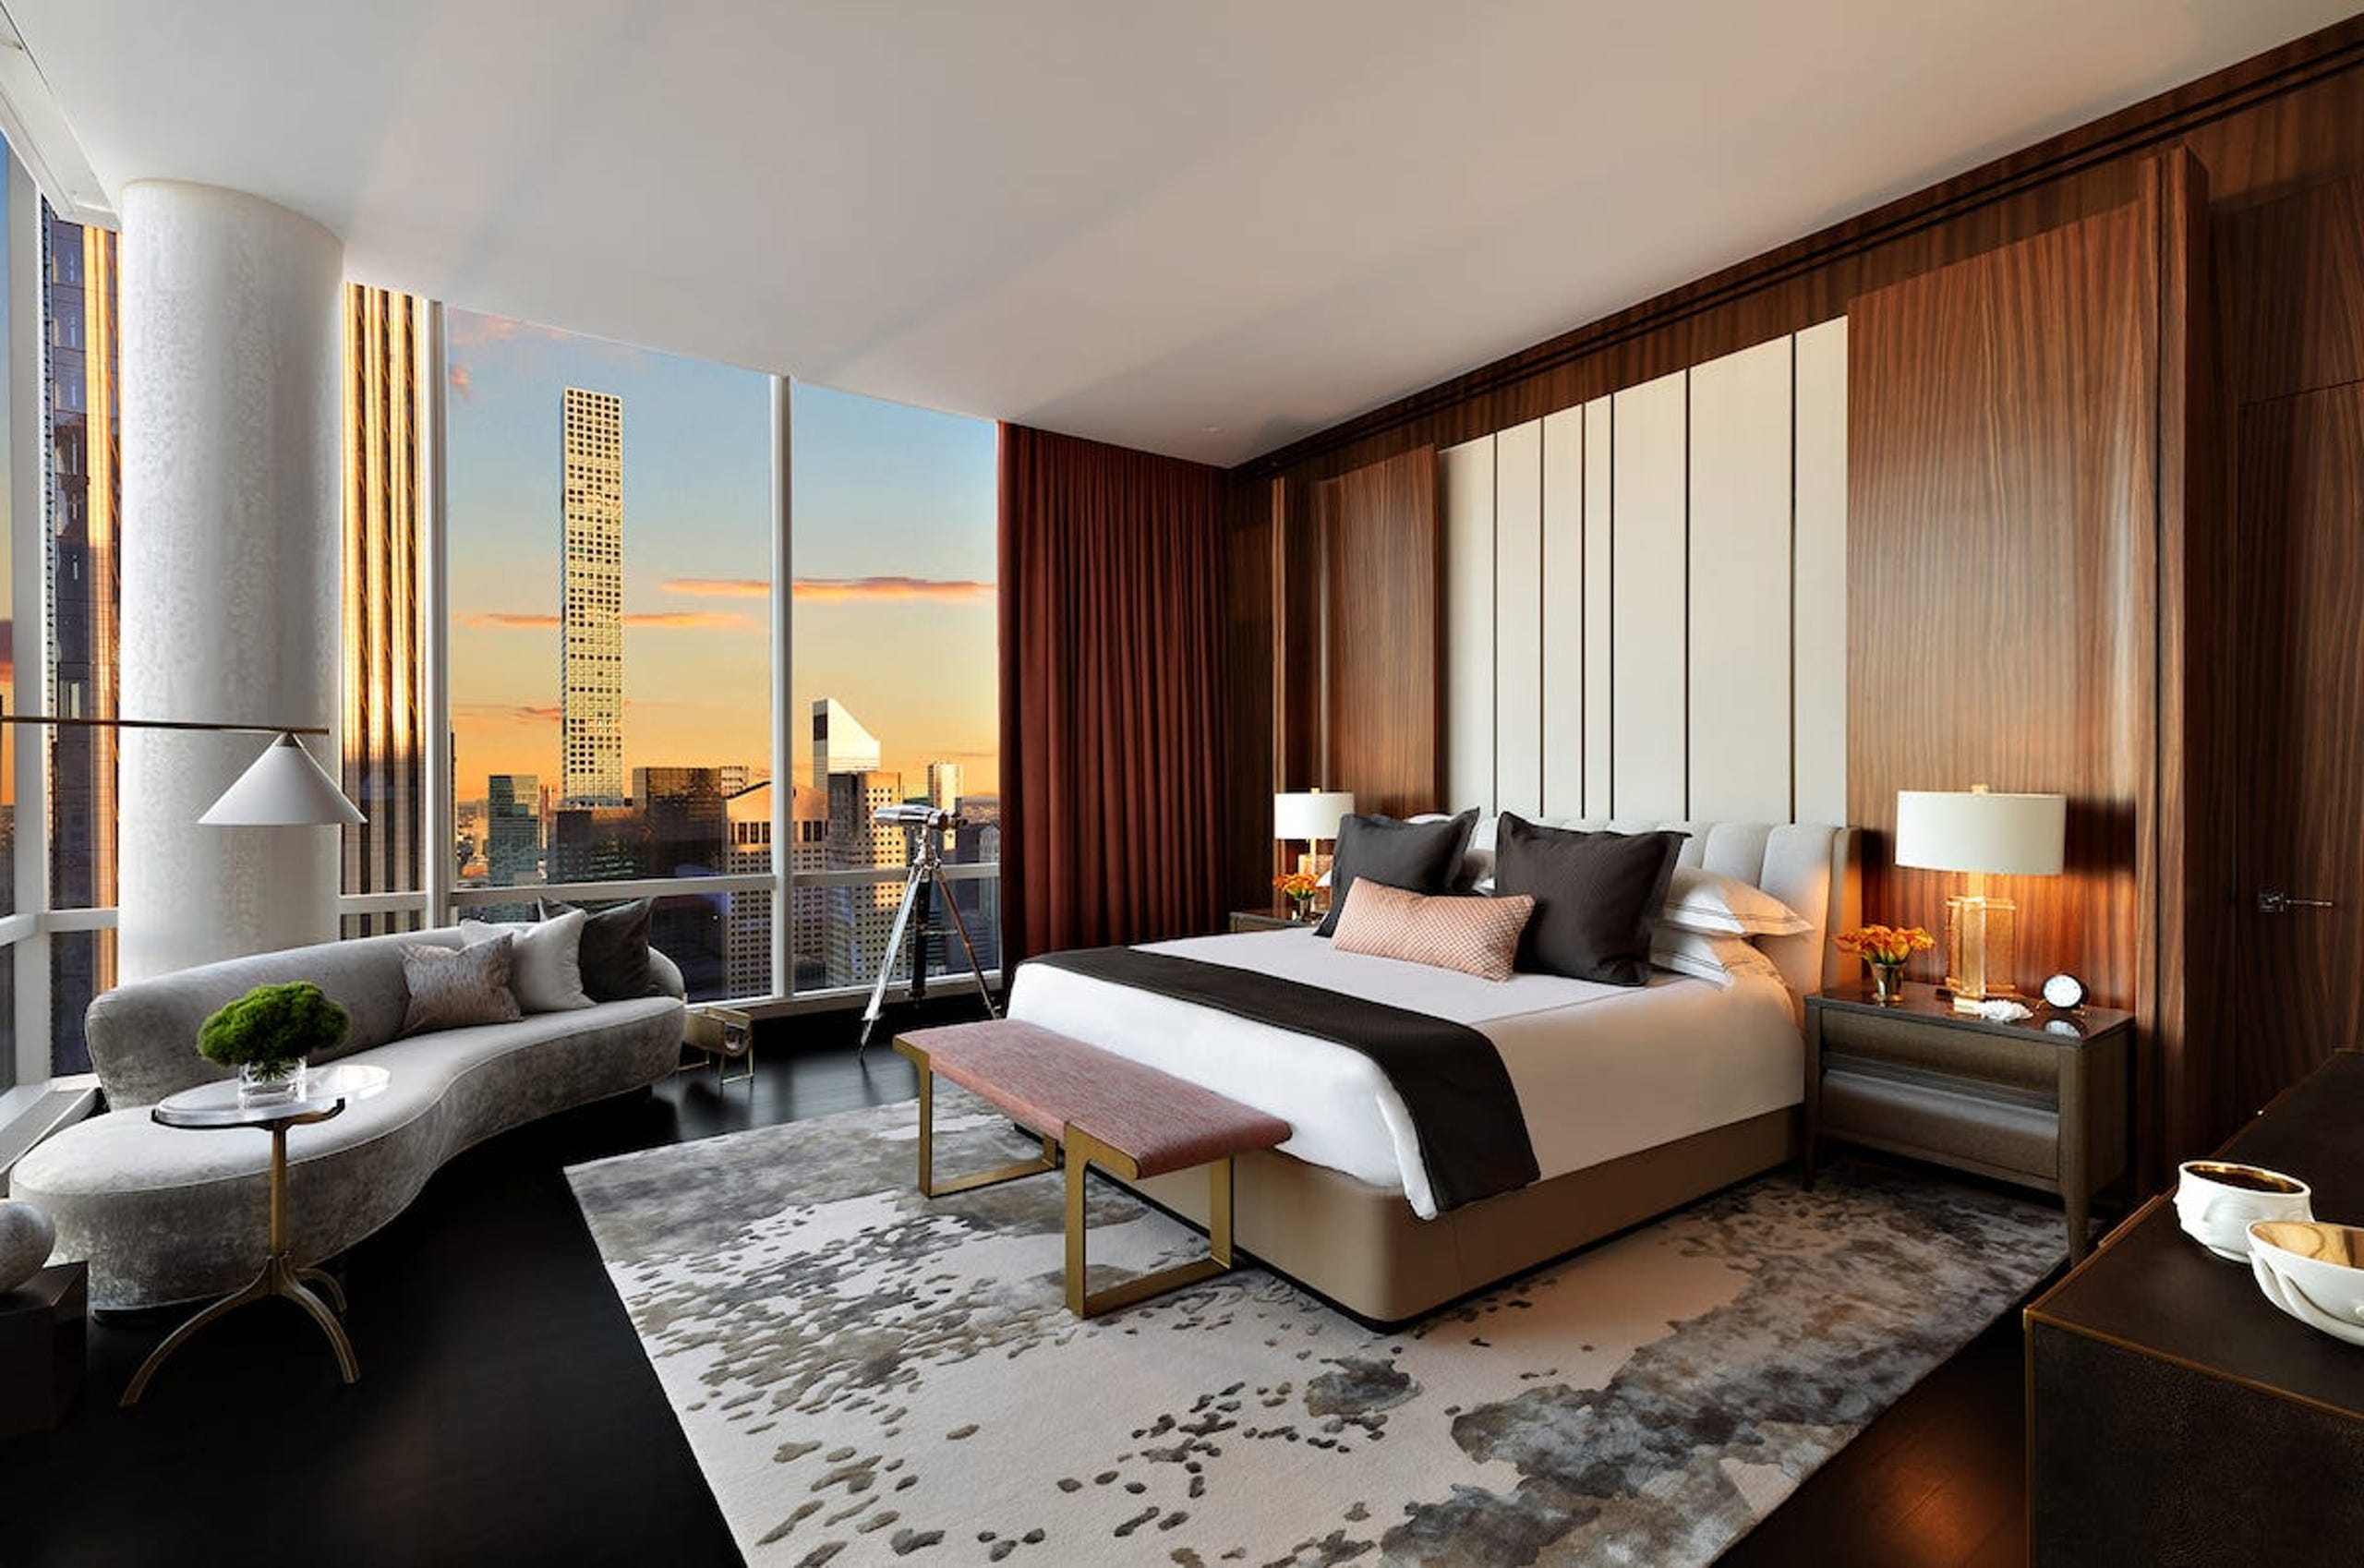 How To Make Your Bedroom Feel Like A Luxury Hotel